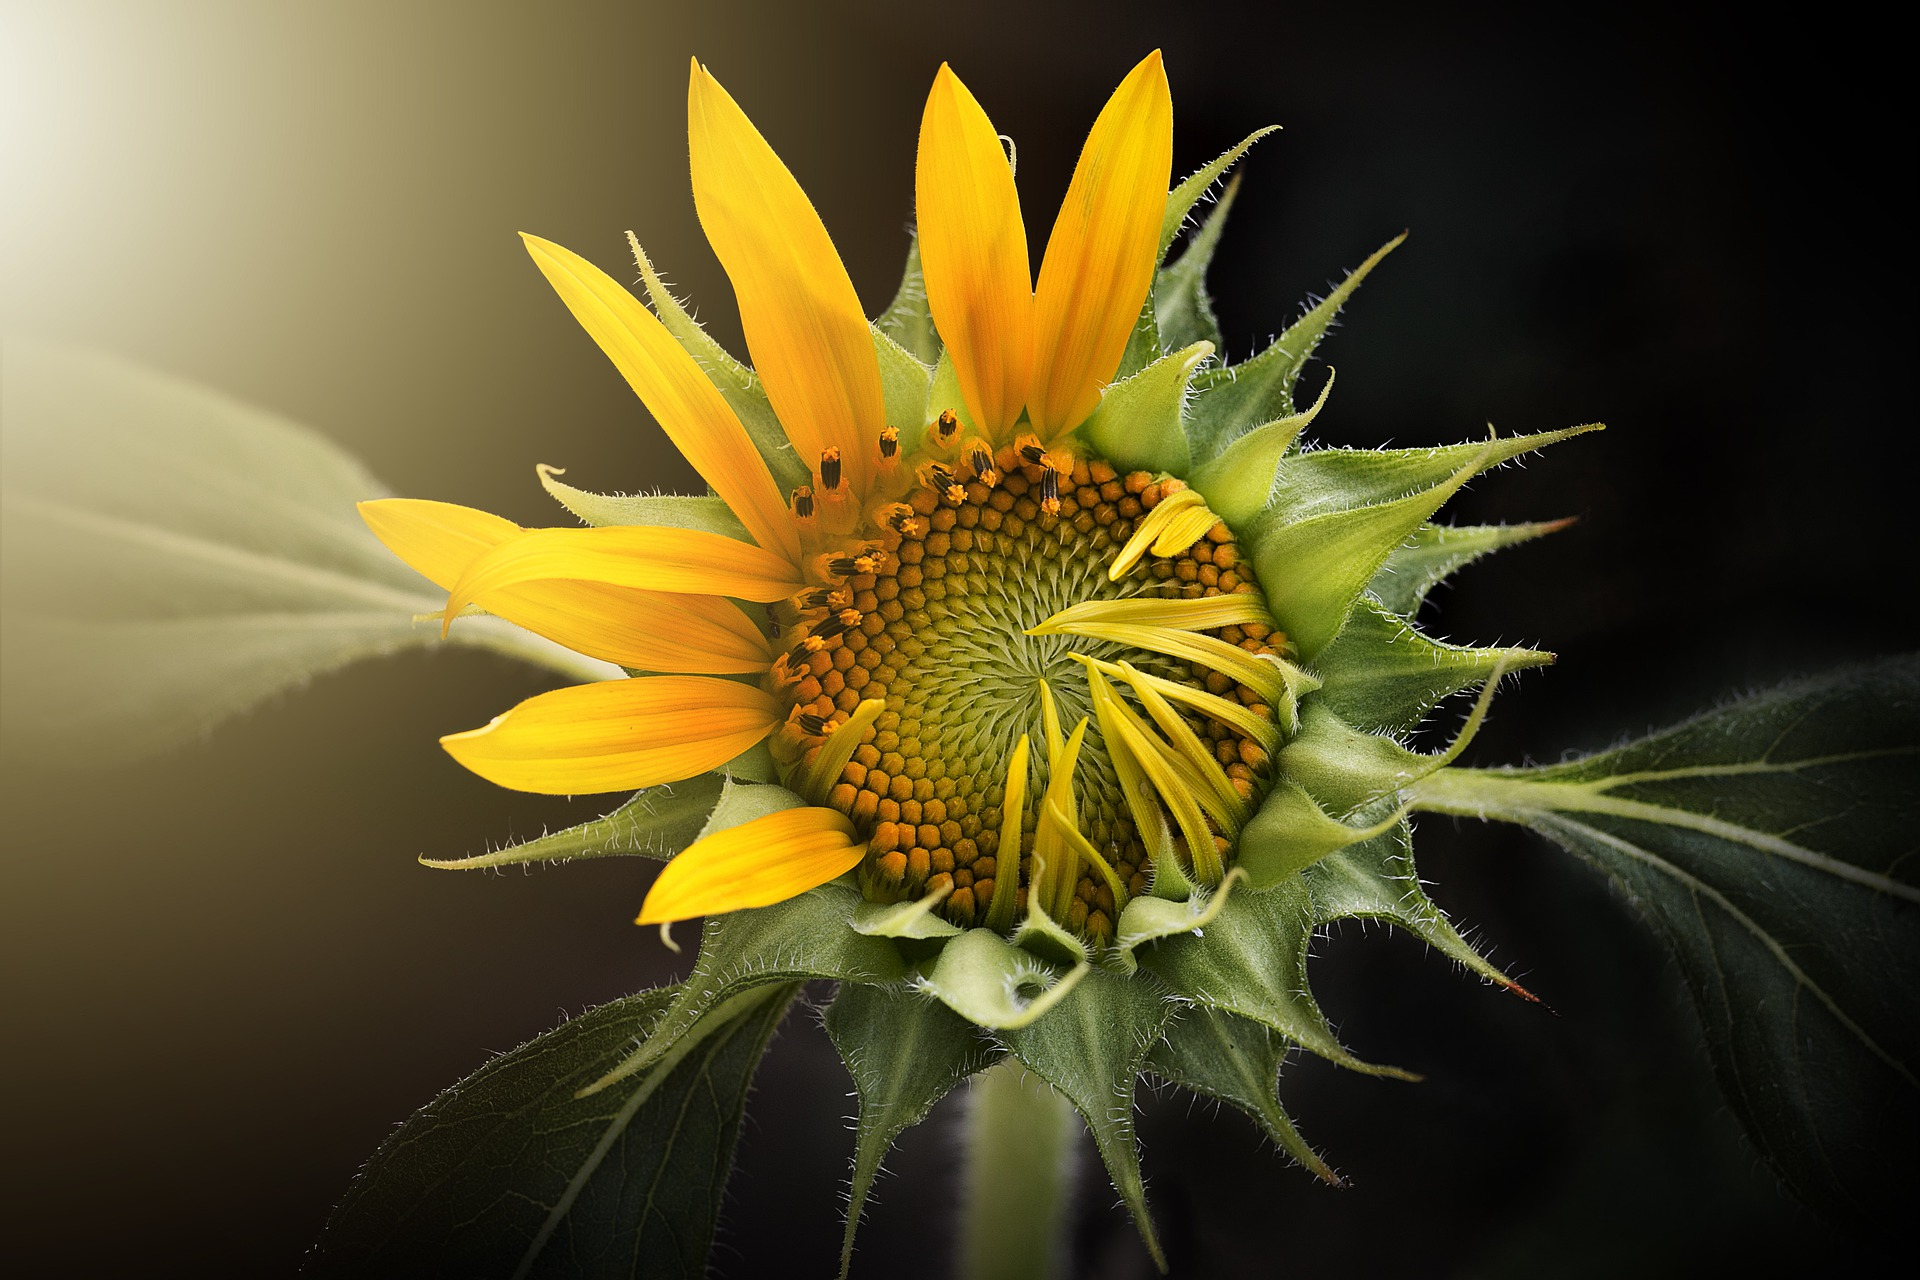 sunflower-3113318_1920